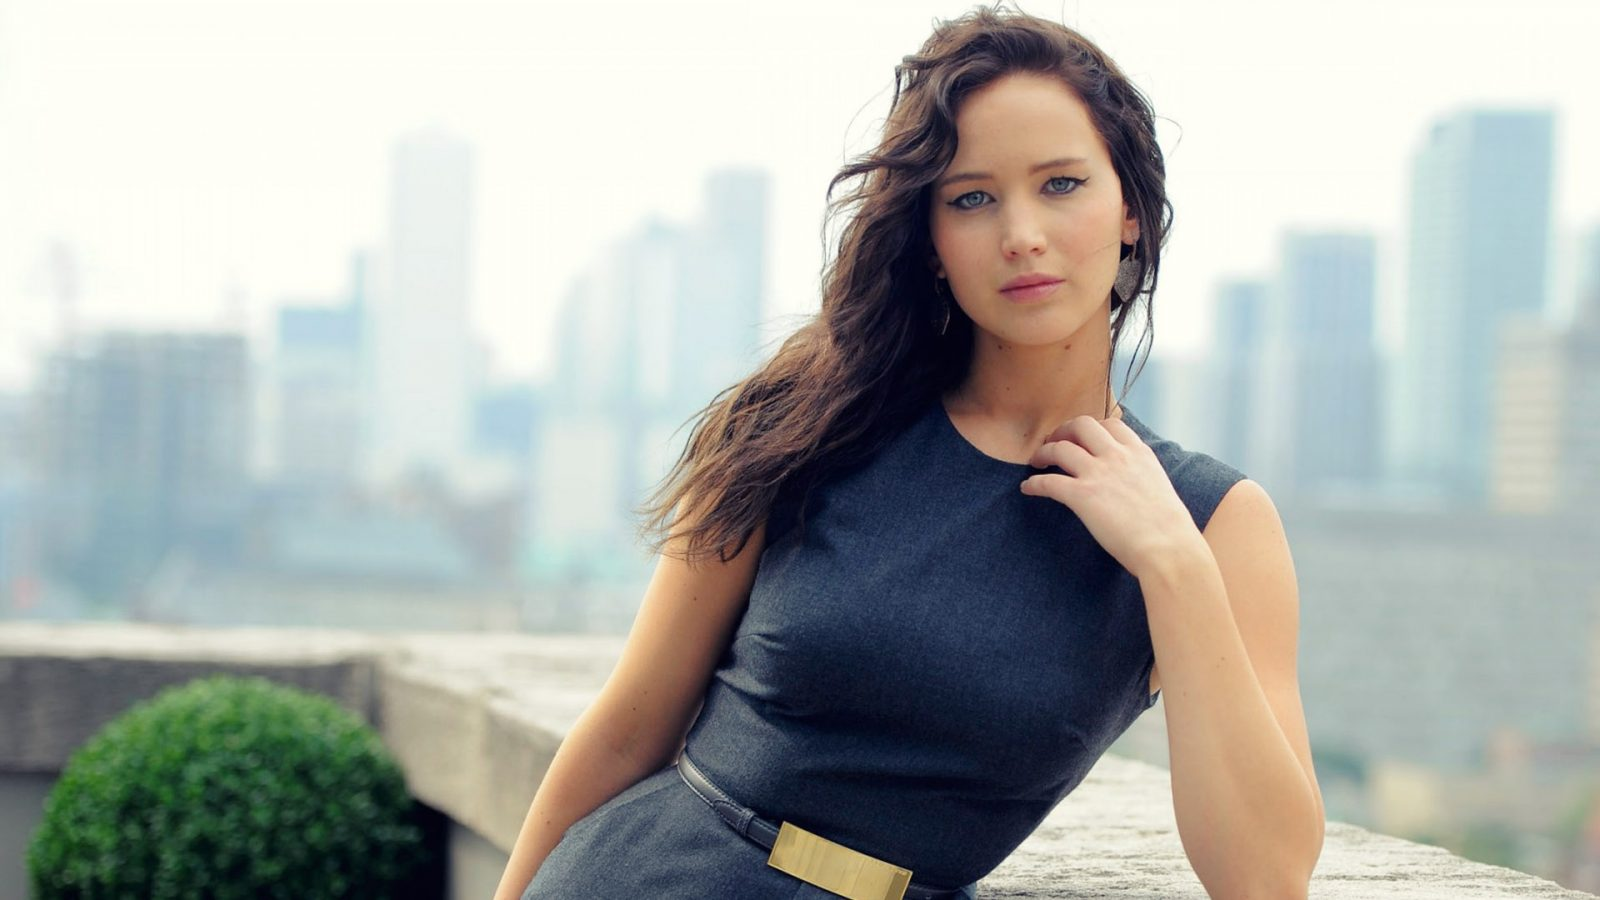 Jennifer lawrence hot wallpaper hd wallpaper background mobile vga 240x320 480x640 320x240 640x480 600x800 mobile wvga 240x400 480x800 400x240 smartphone 169 540x960 jennifer lawrence voltagebd Image collections